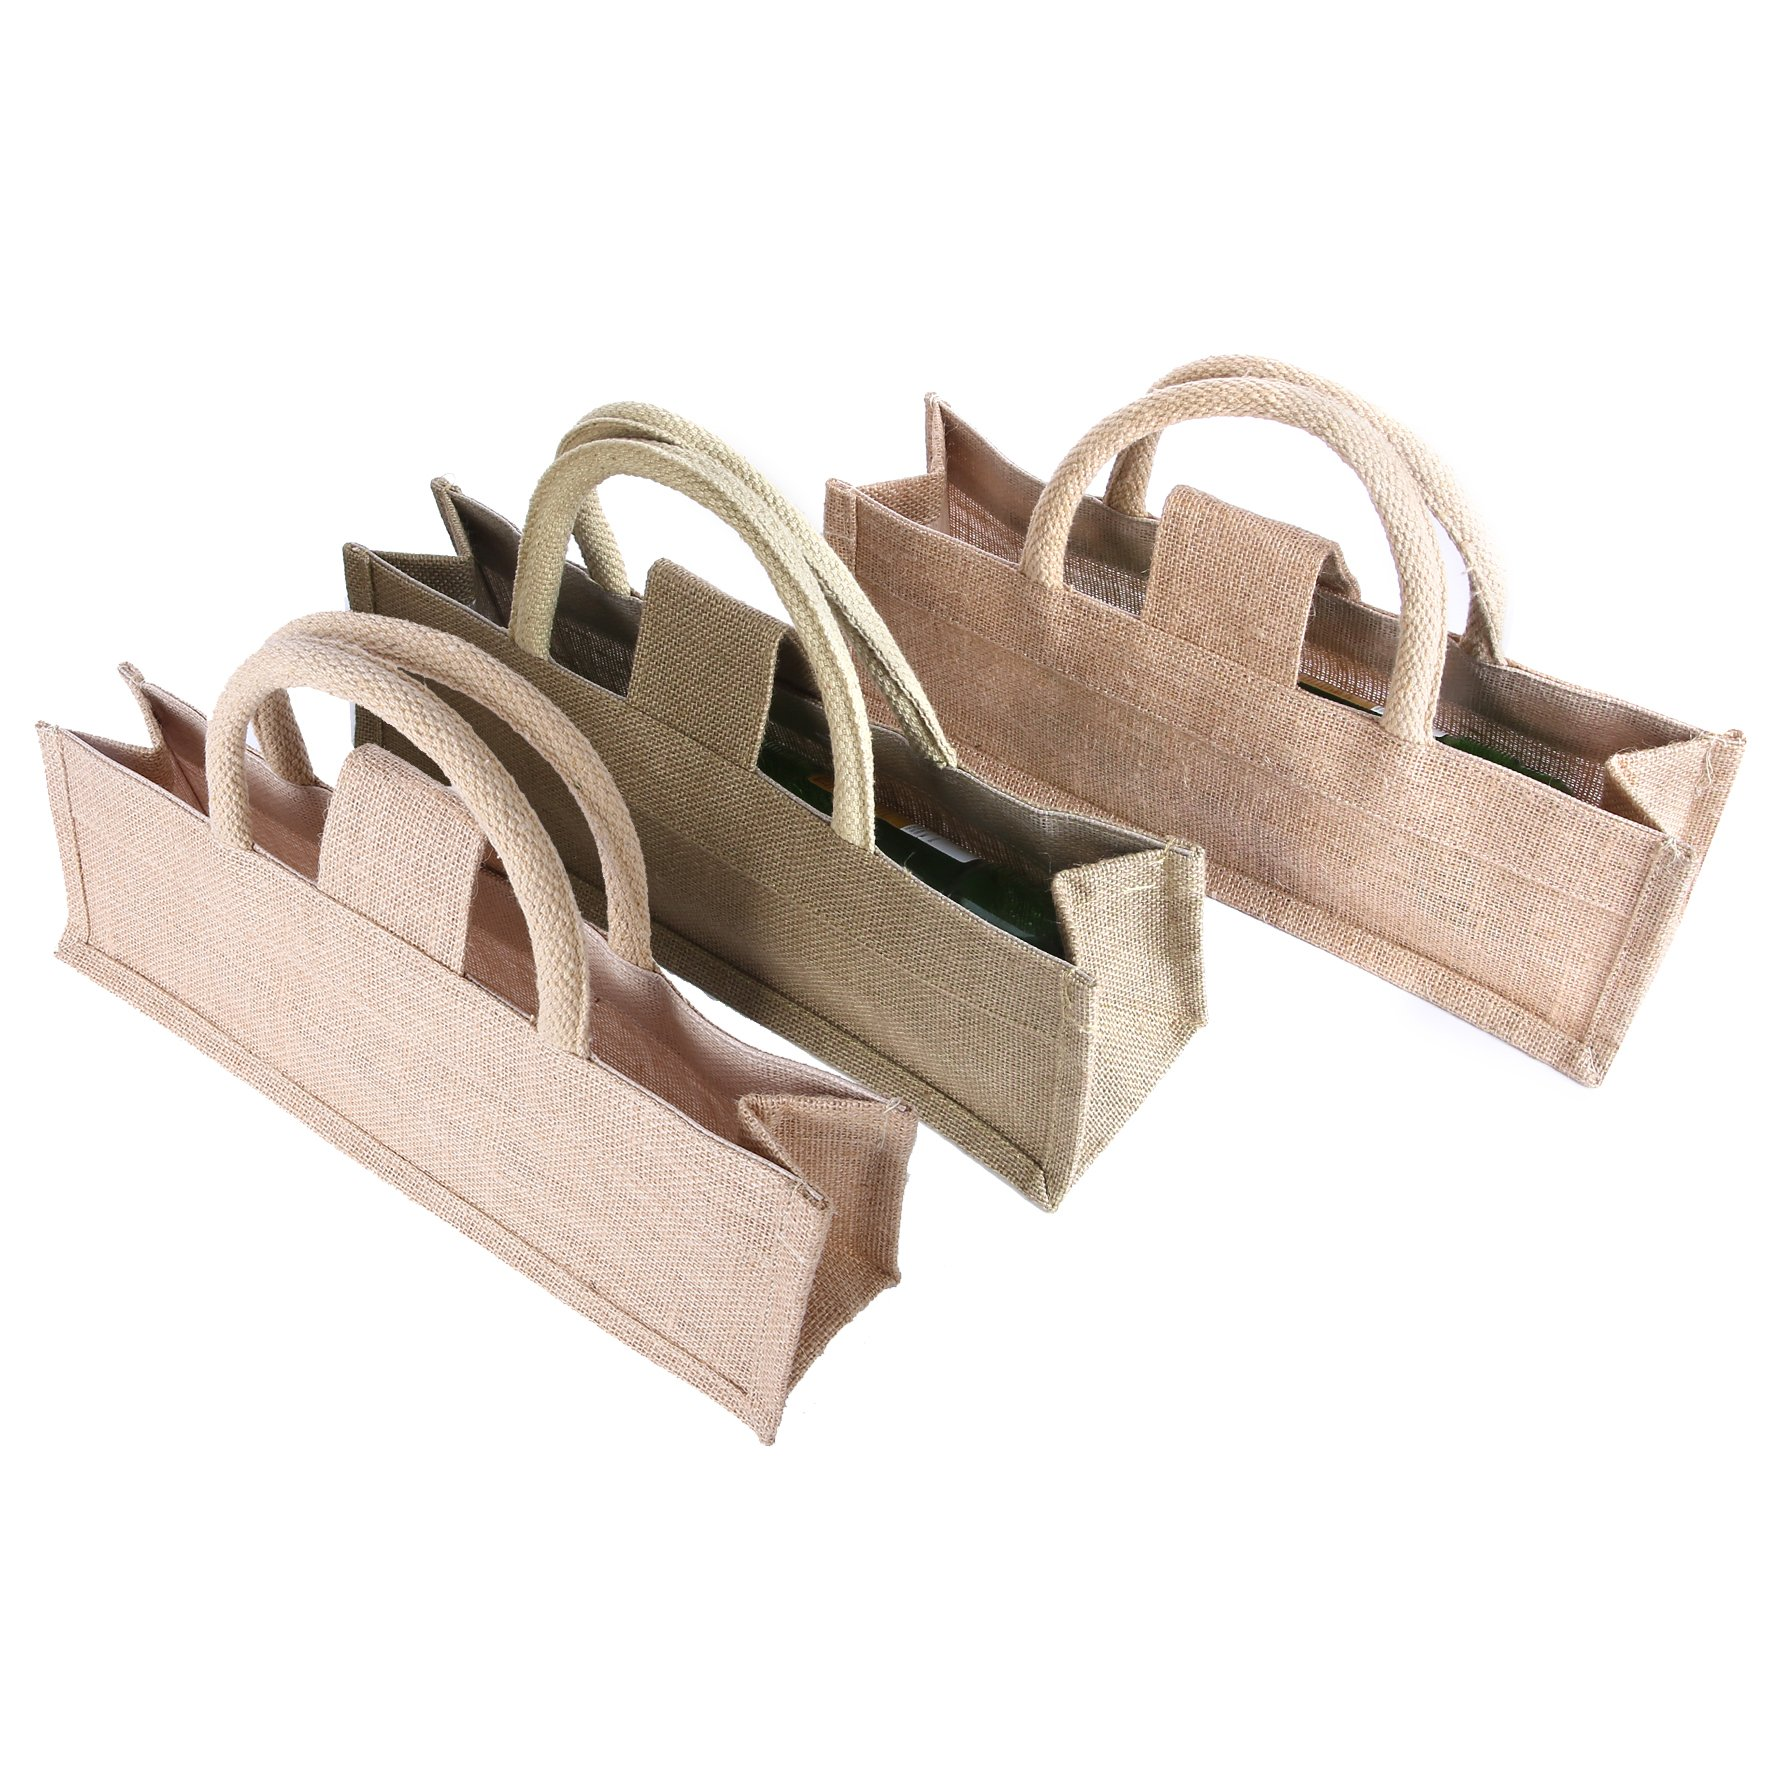 Earthbags Jute Wine Bags, Ideal for Gifting From (Pack of 3)